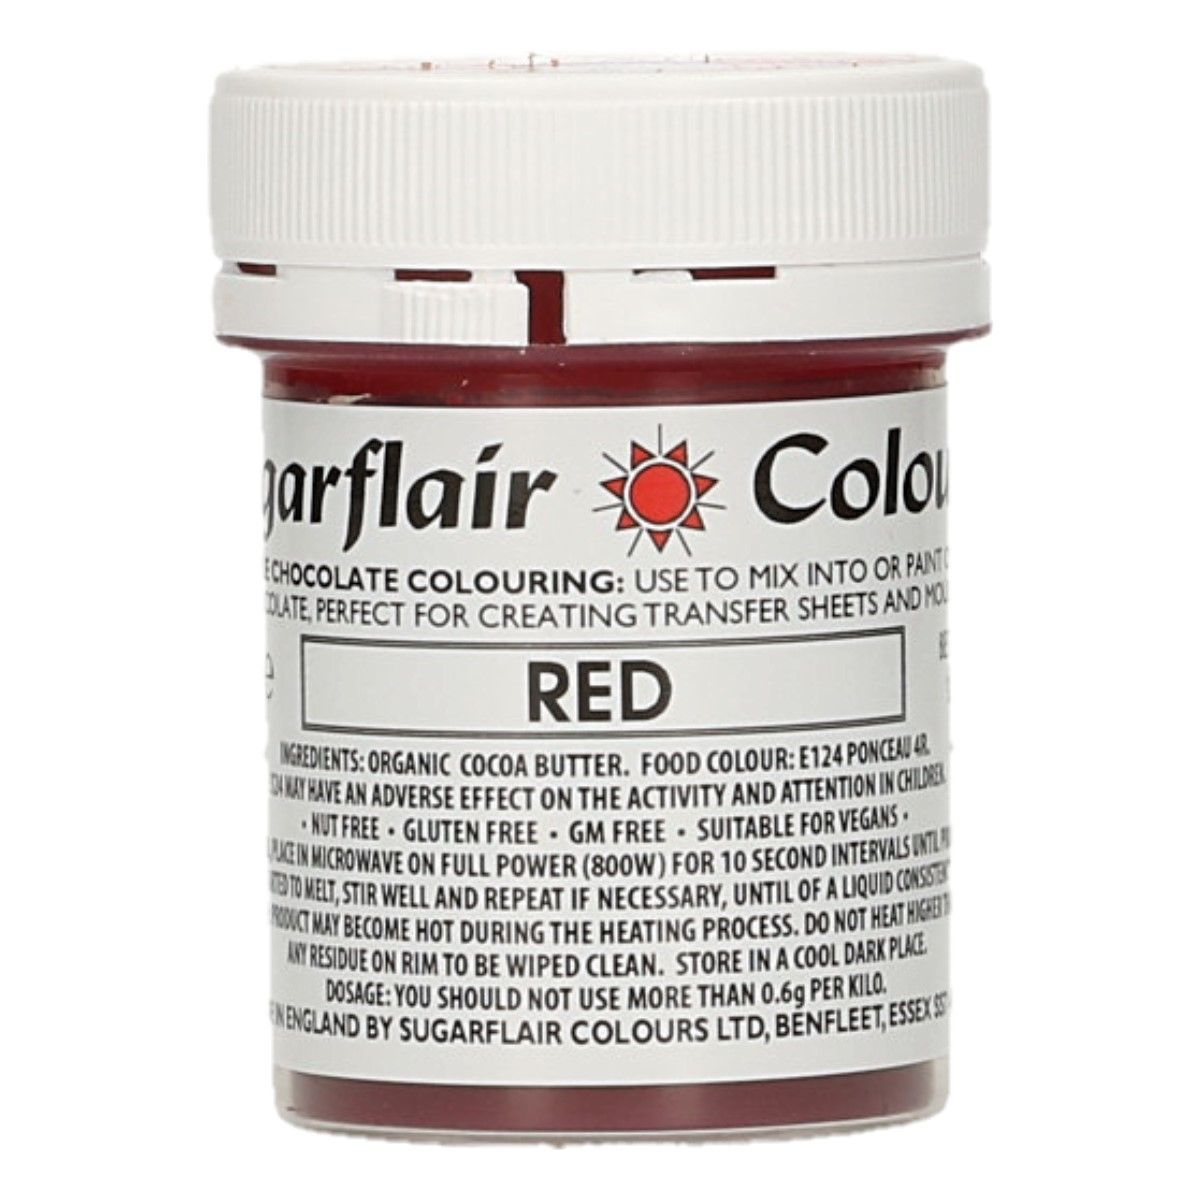 Sugarflair Chocolate Colour Red 35g